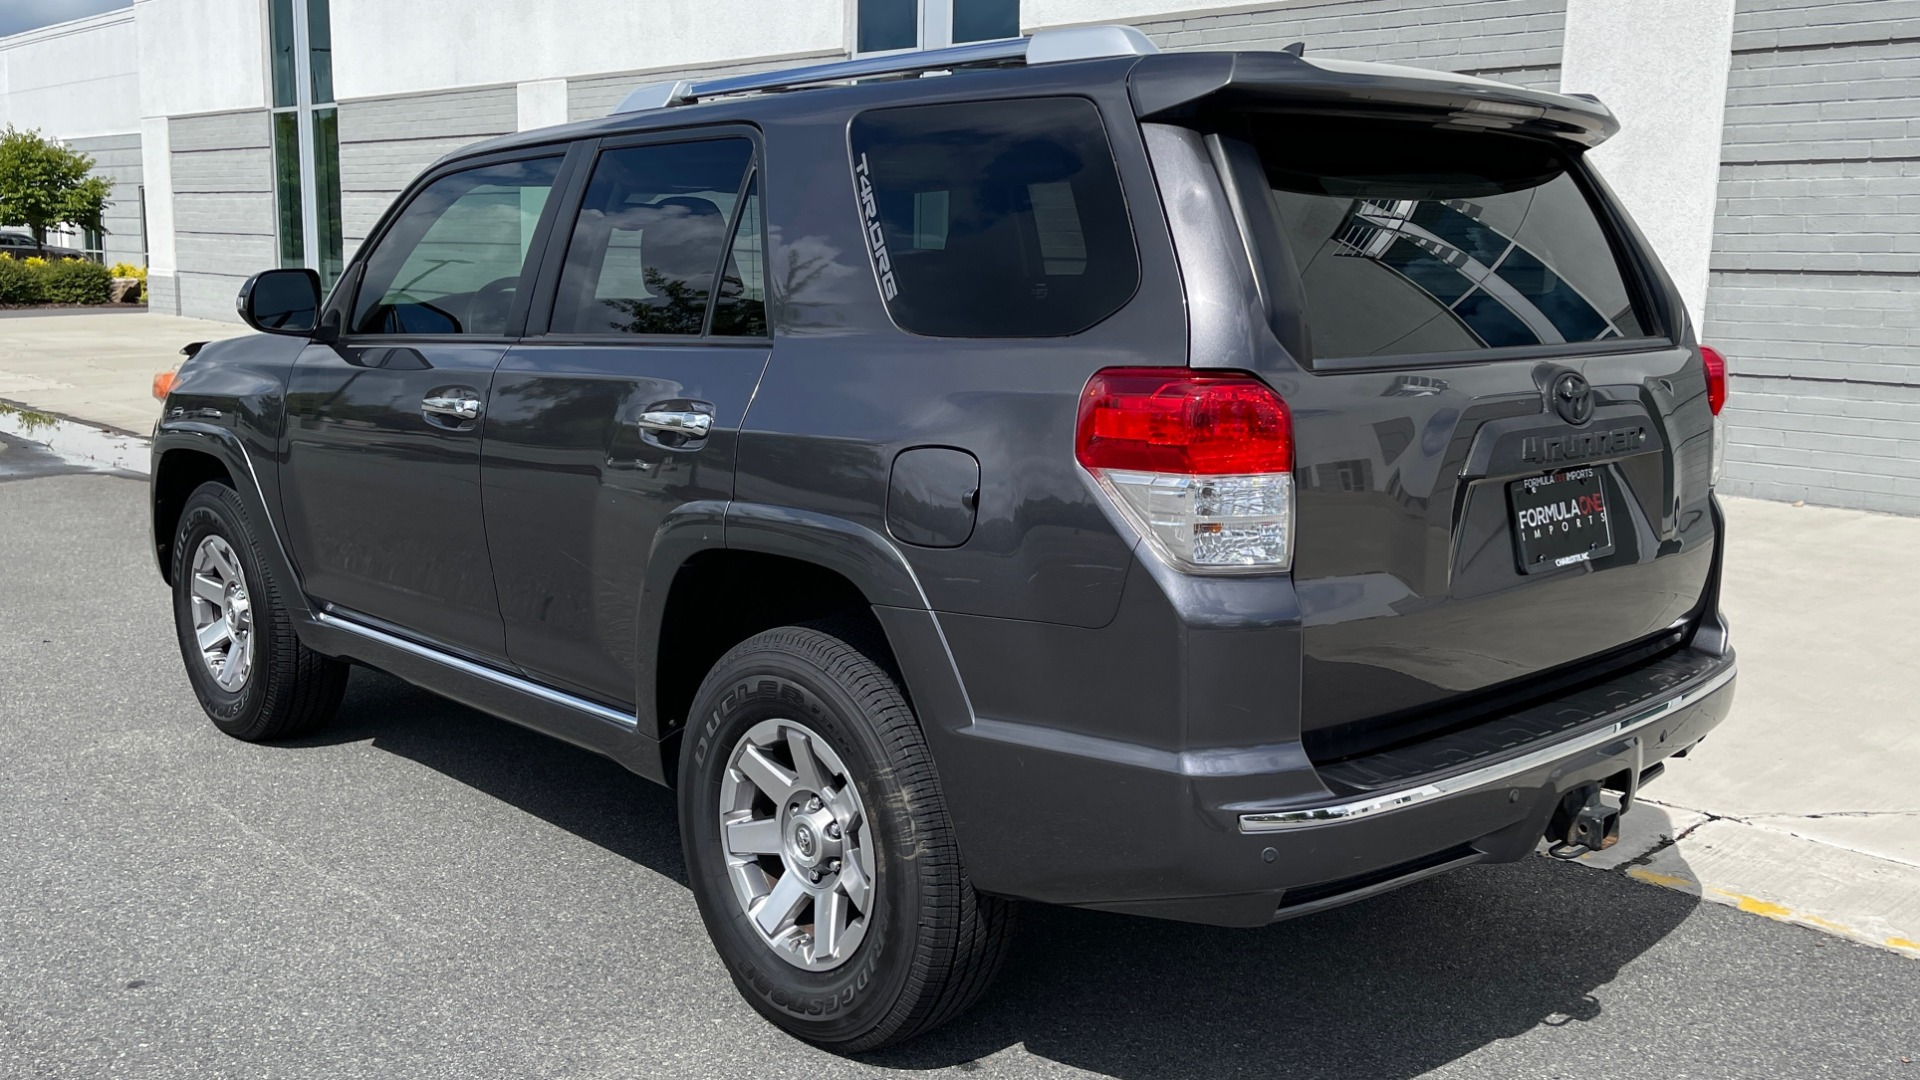 Used 2011 Toyota 4RUNNER SR5 4X4 V6 / 5-SPD AUTO / SUNROOF / POWER FRONT SEATS for sale $19,999 at Formula Imports in Charlotte NC 28227 4